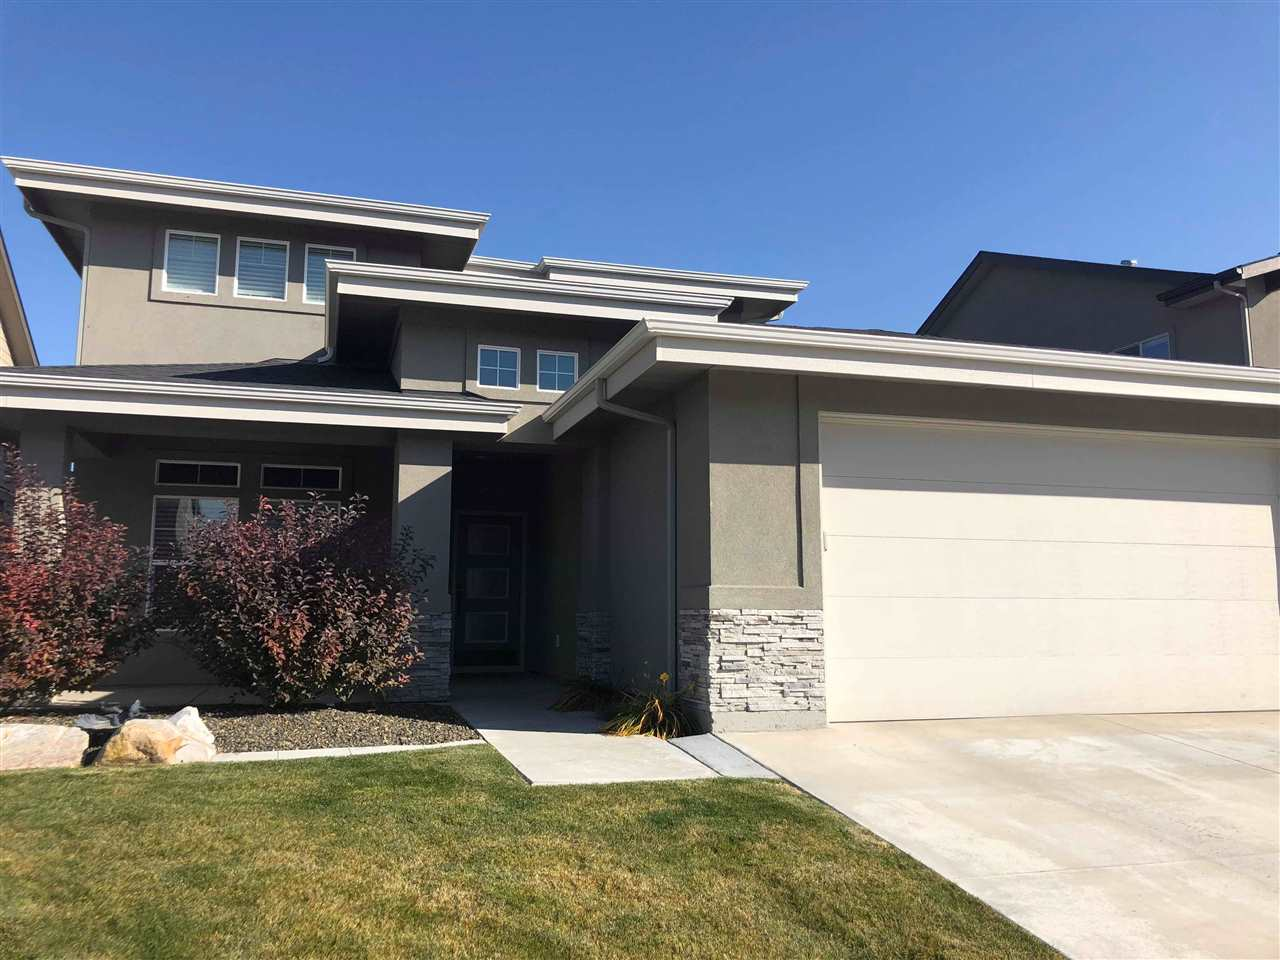 8118 S Red Cliff Ave, Boise, Idaho 83716, 5 Bedrooms Bedrooms, ,2.5 BathroomsBathrooms,Rental,For Rent,8118 S Red Cliff Ave,98712045